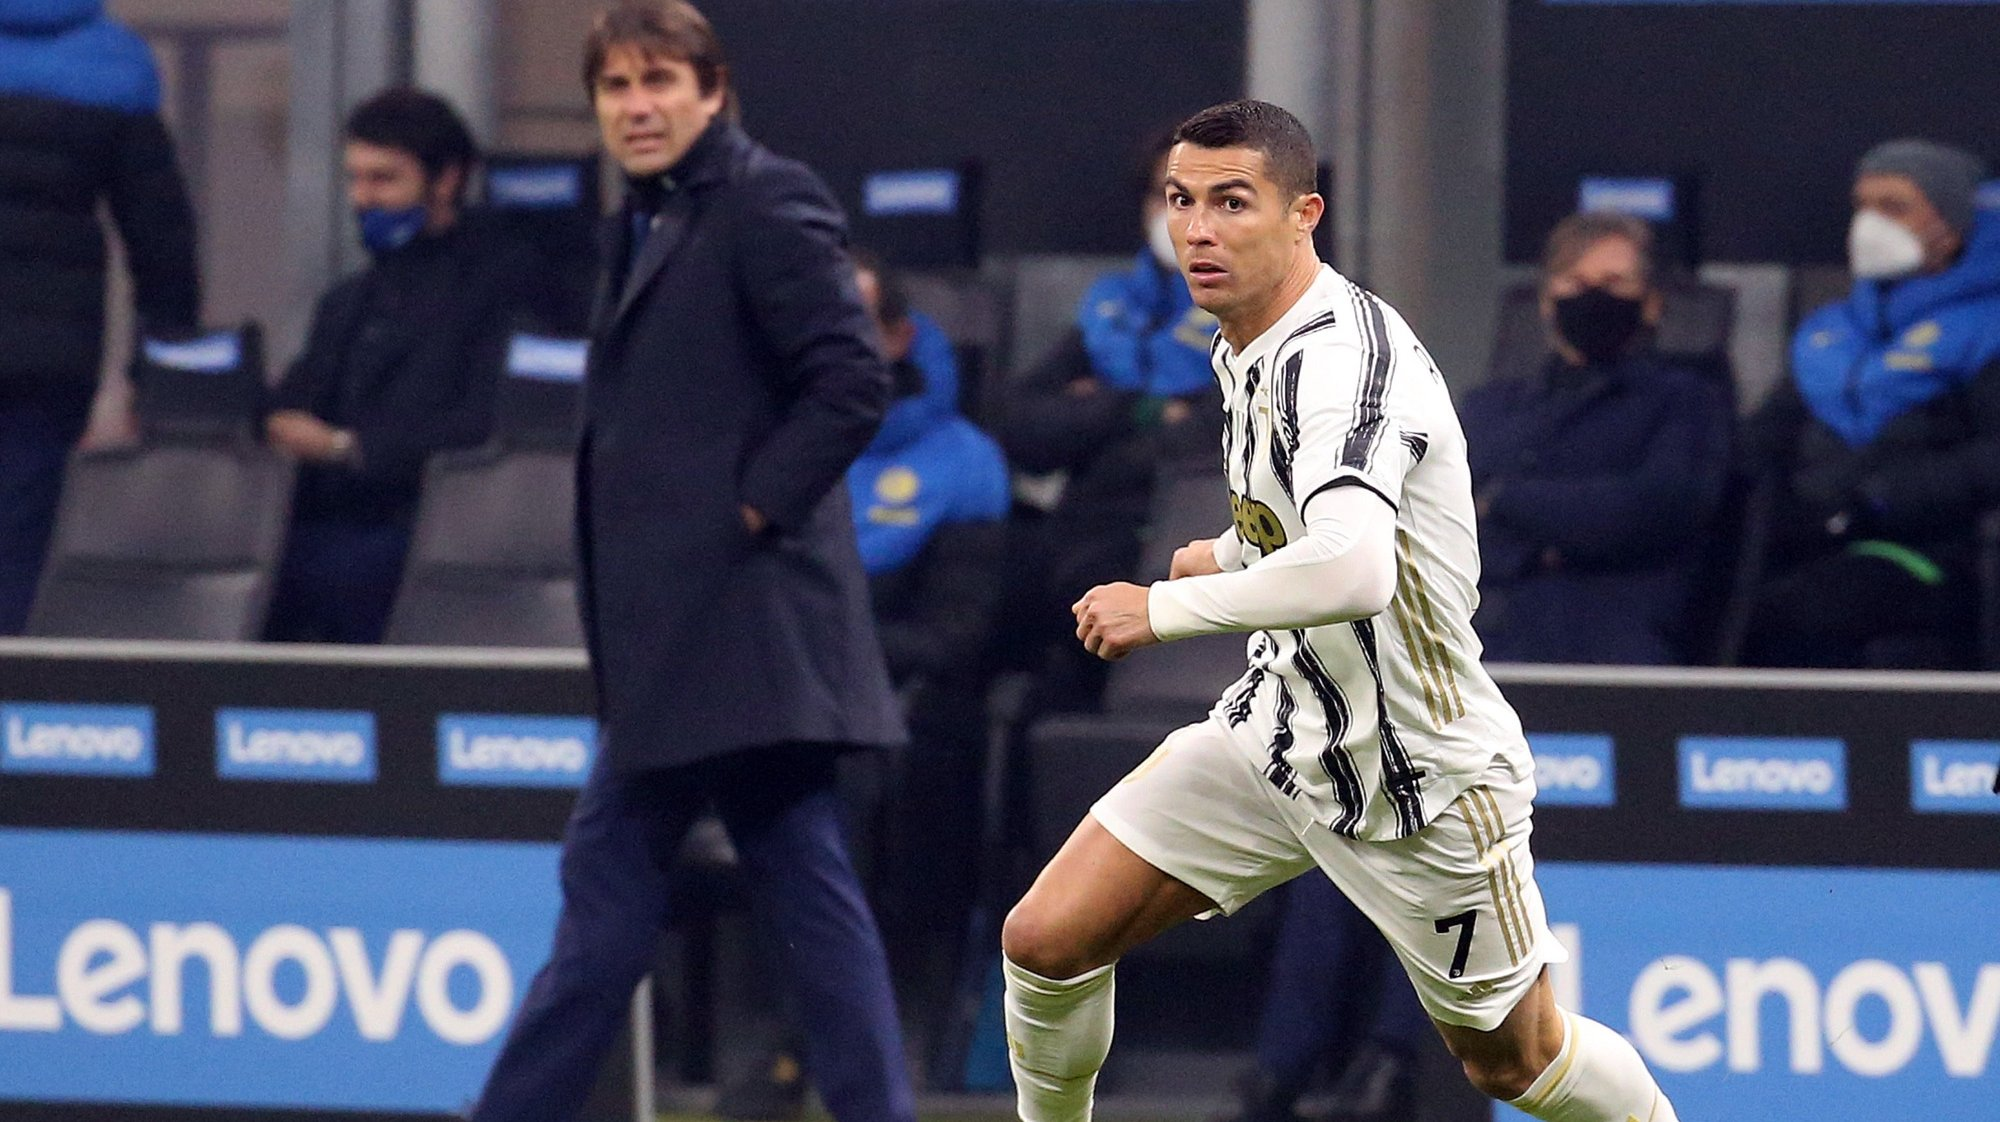 epa08944688 Juventus' Cristiano Ronaldo in action during the Italian Serie A soccer match between FC Inter and Juventus FC at Giuseppe Meazza stadium in Milan, Italy, 17 January  2021.  EPA/MATTEO BAZZI